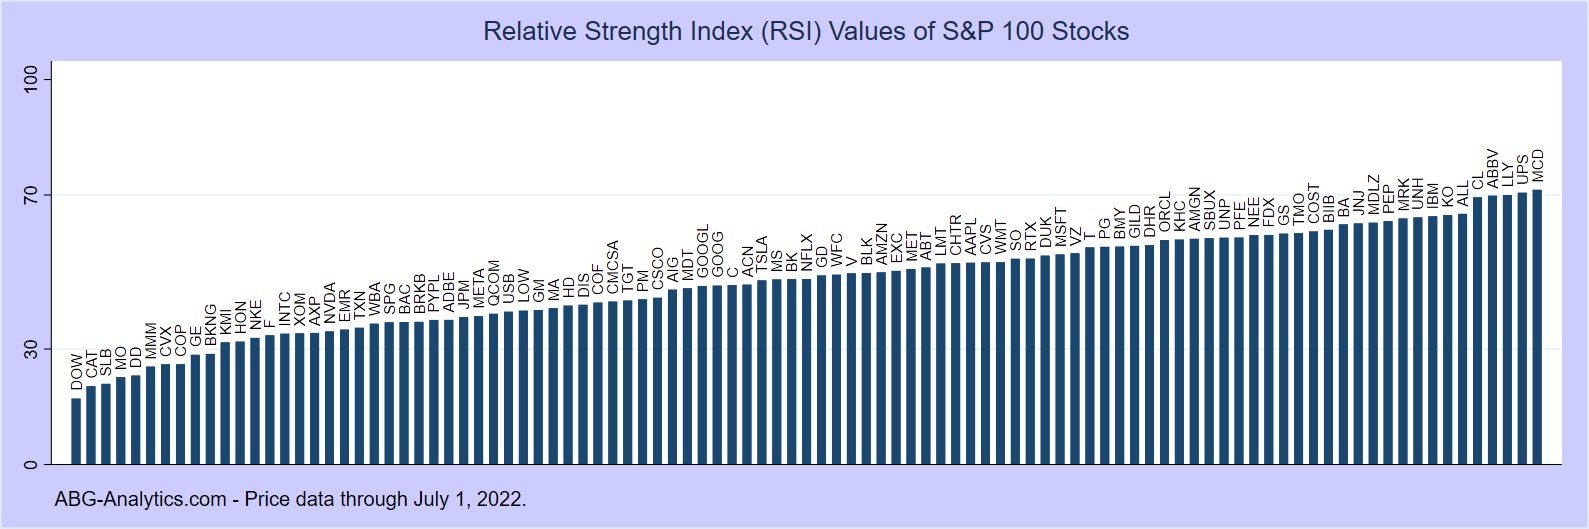 Bar Chart of Relative Strength Index (RSI) values for S&P 100 stocks